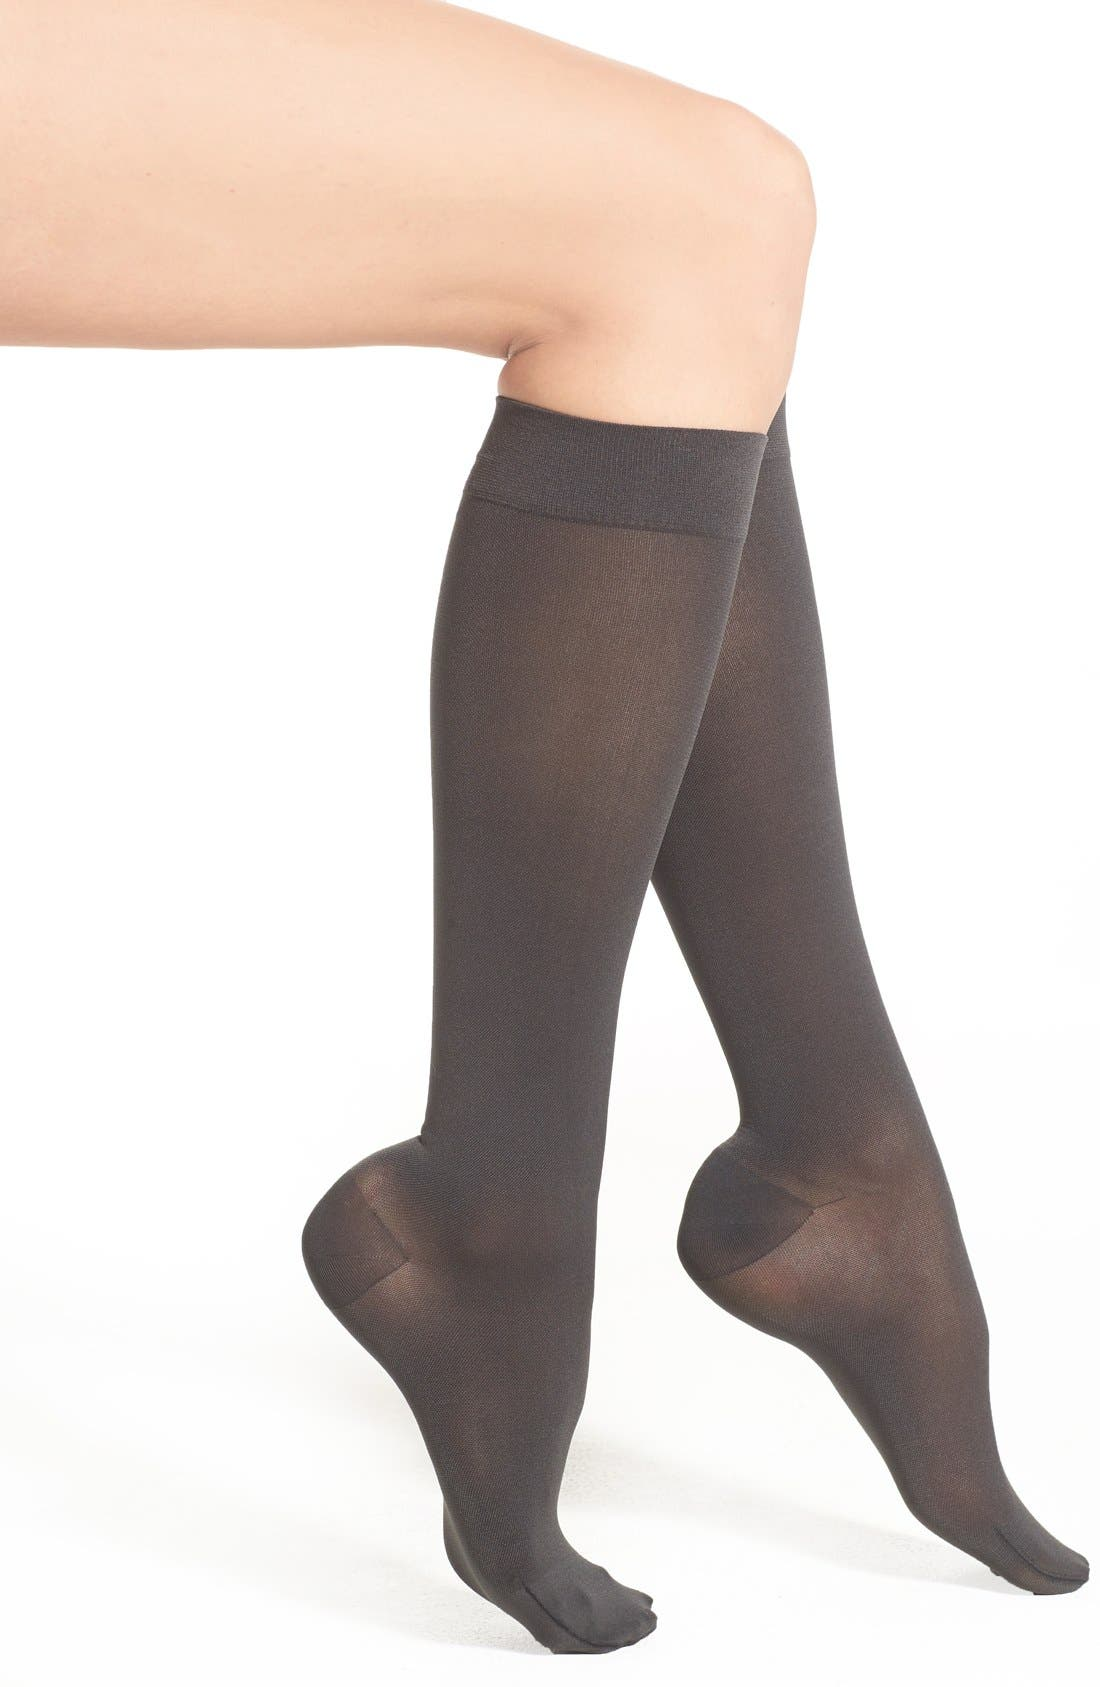 Main Image - INSIGNIA by SIGVARIS 'Headliner' Compression Knee High Socks